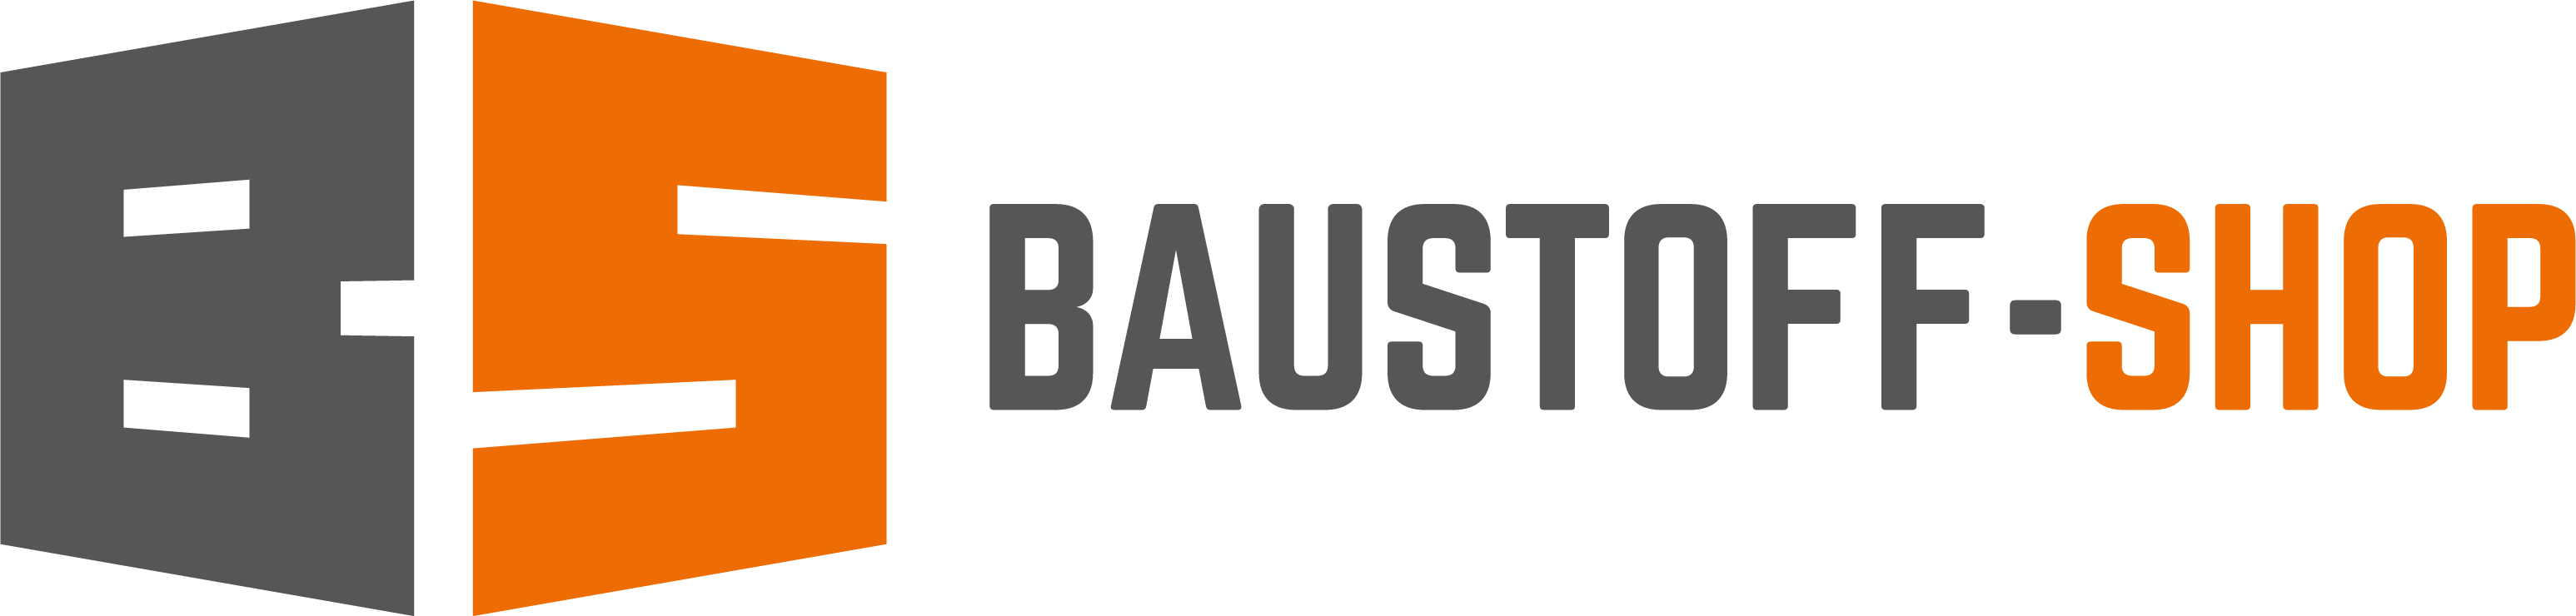 Xenox IT Solutions Referenz Baustoffshop GmbH